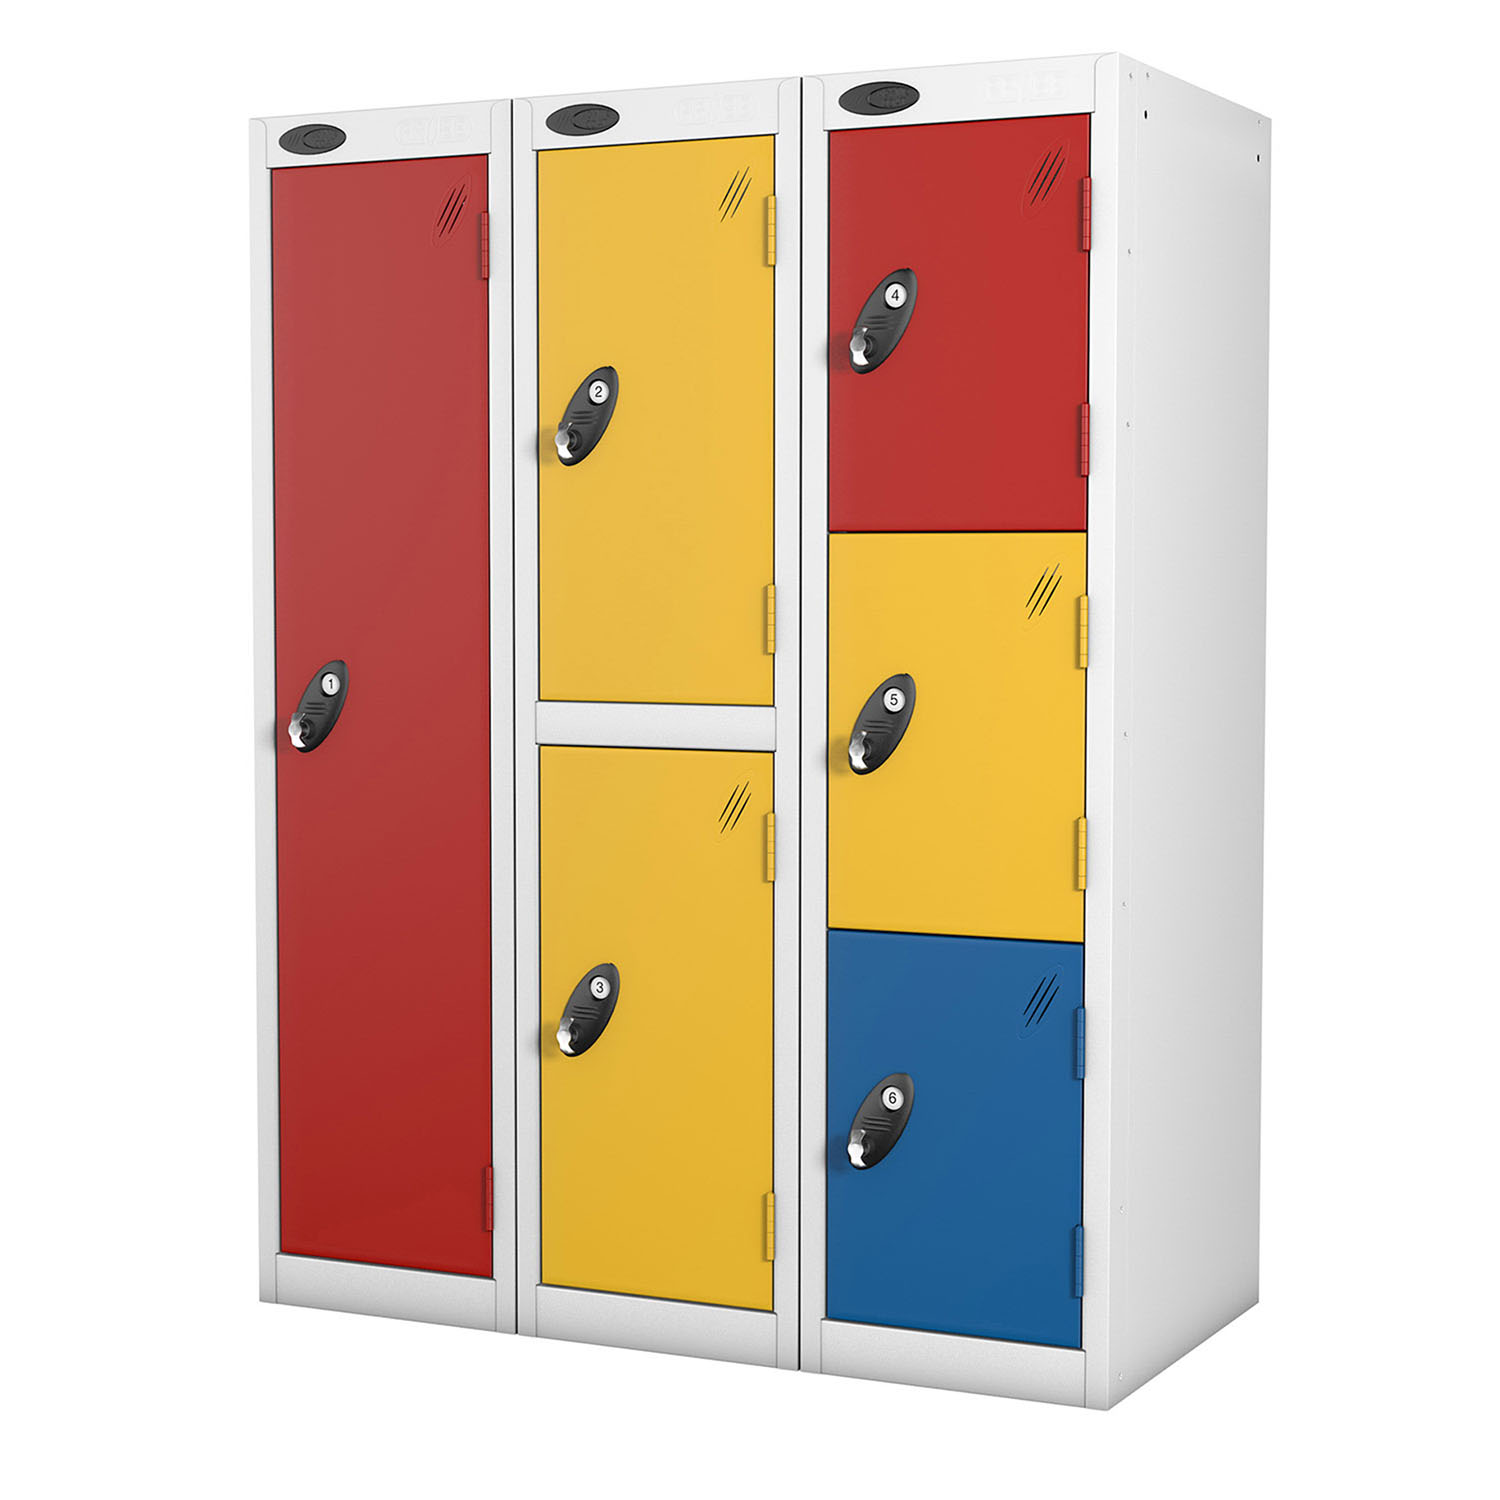 Probe 1,2,3 doors low locker in yellow, red and blue colours